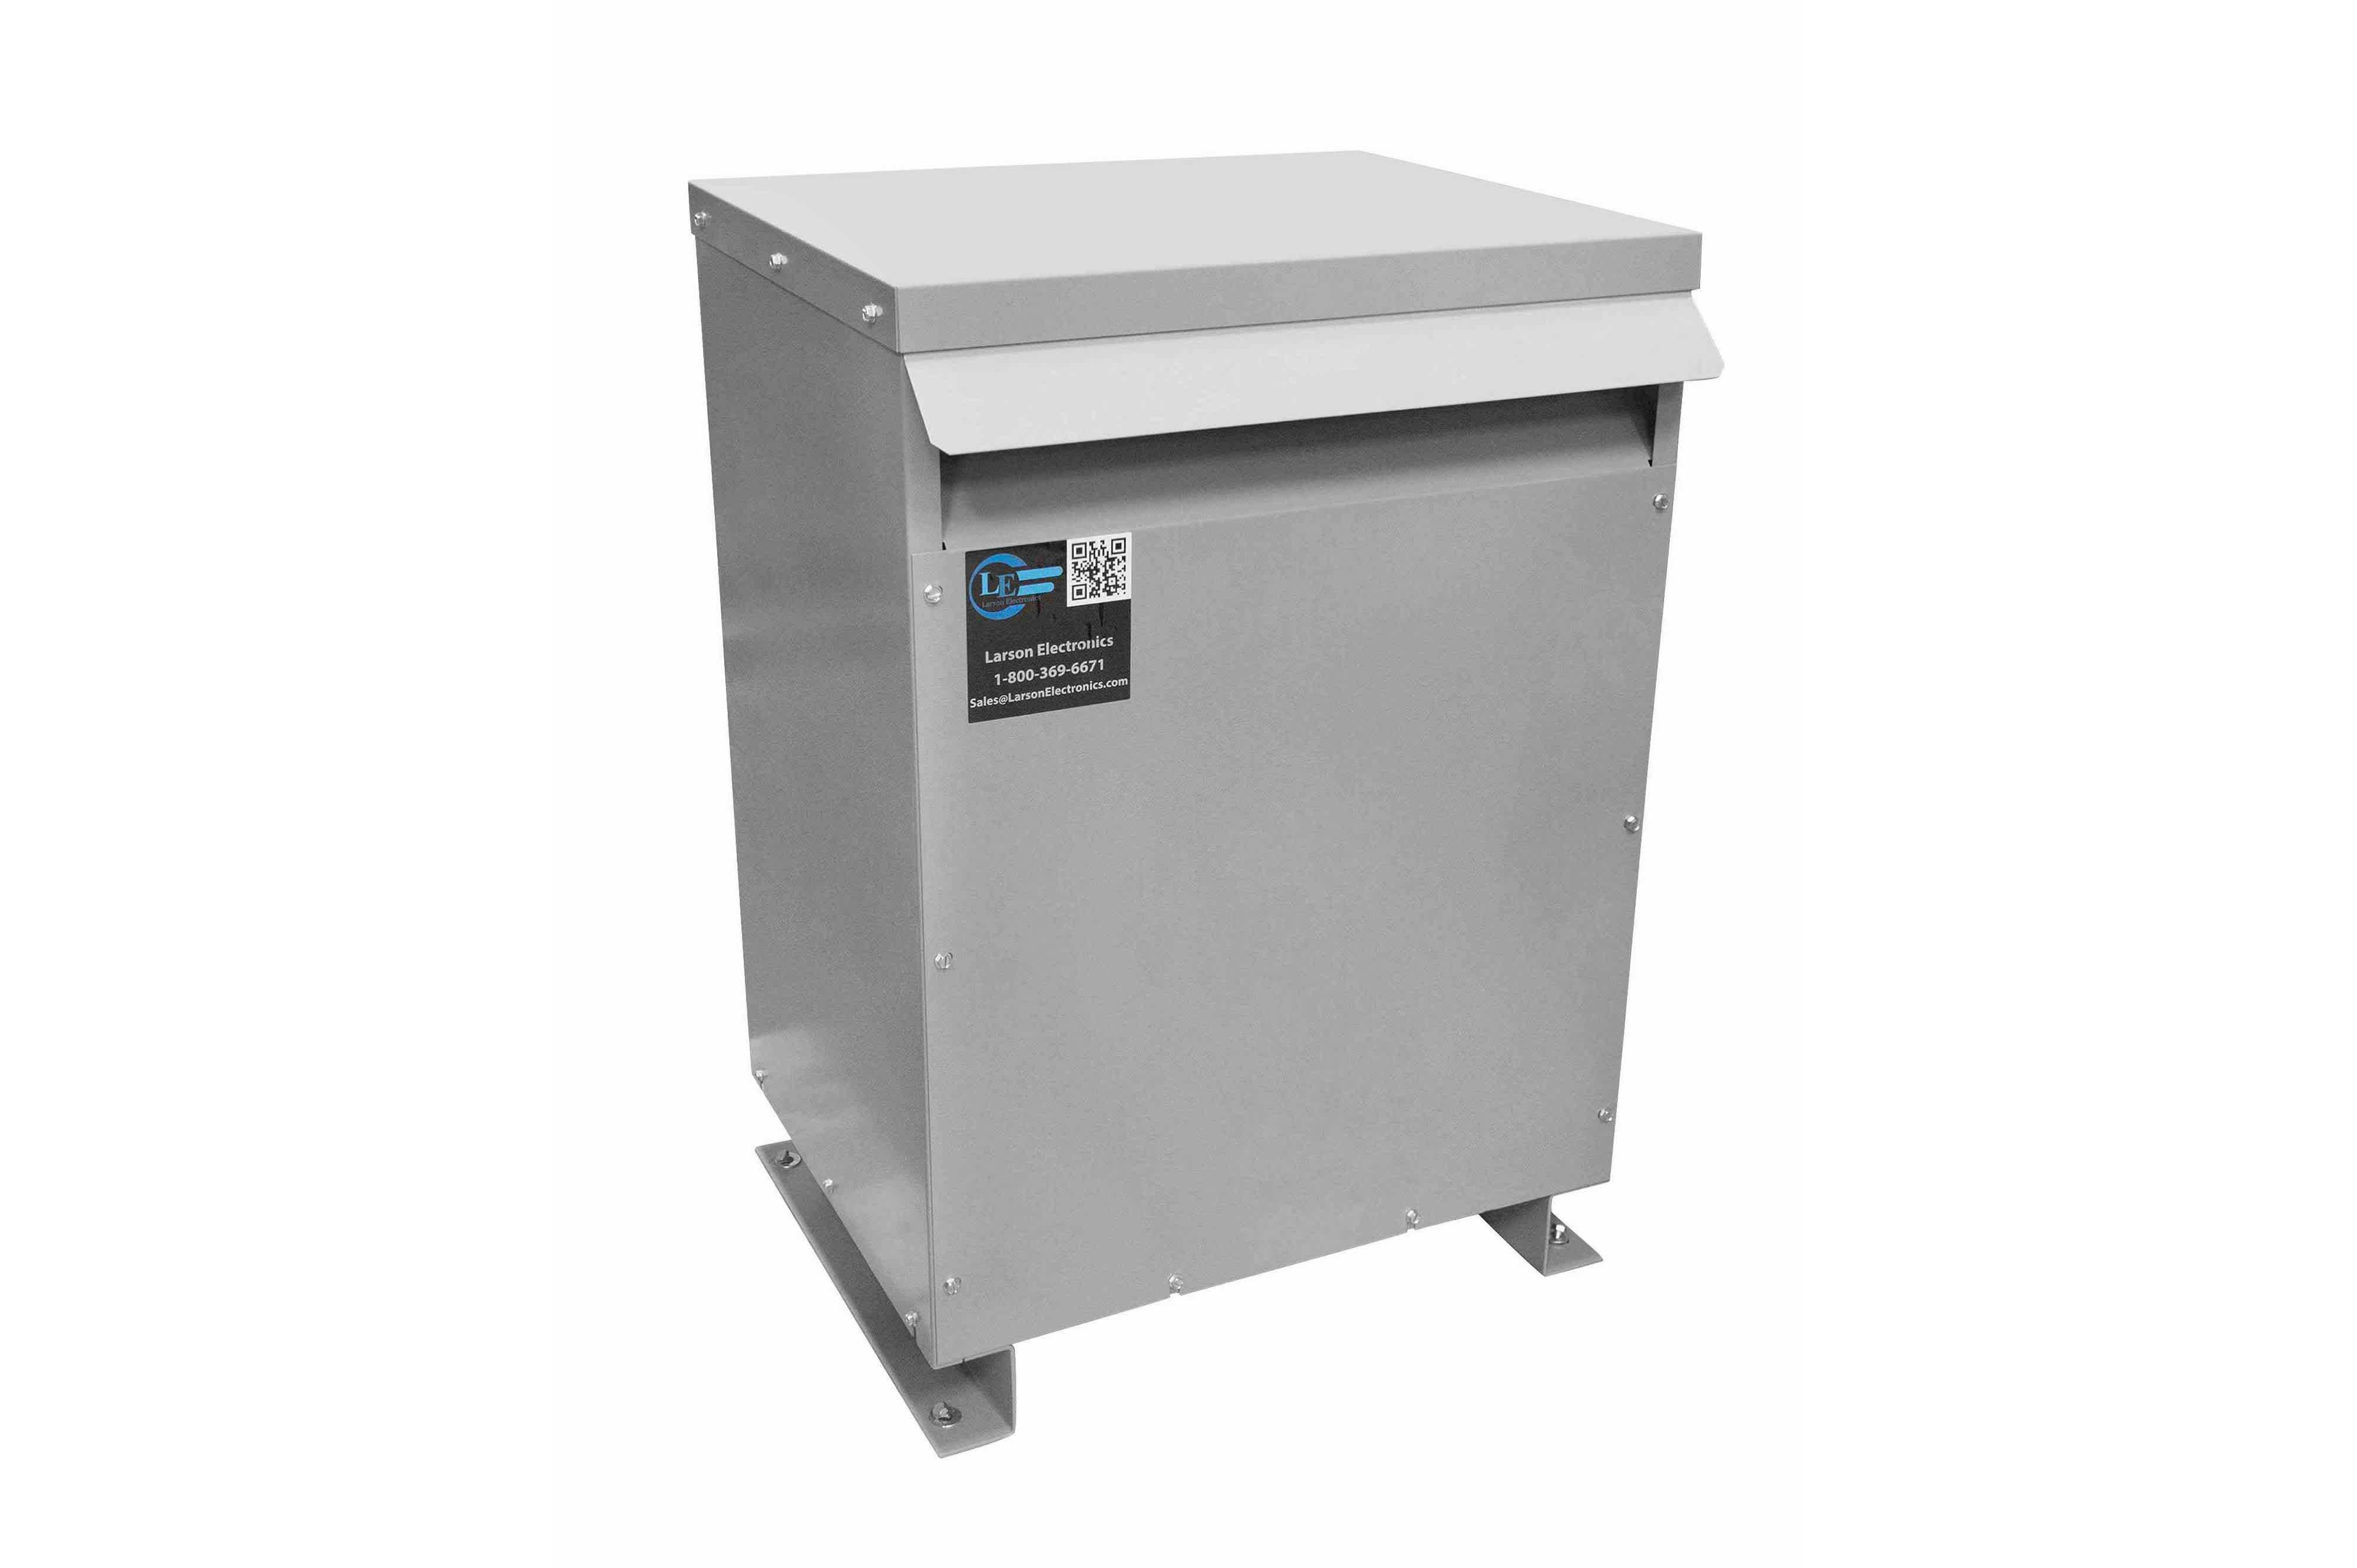 700 kVA 3PH Isolation Transformer, 240V Wye Primary, 415V Delta Secondary, N3R, Ventilated, 60 Hz